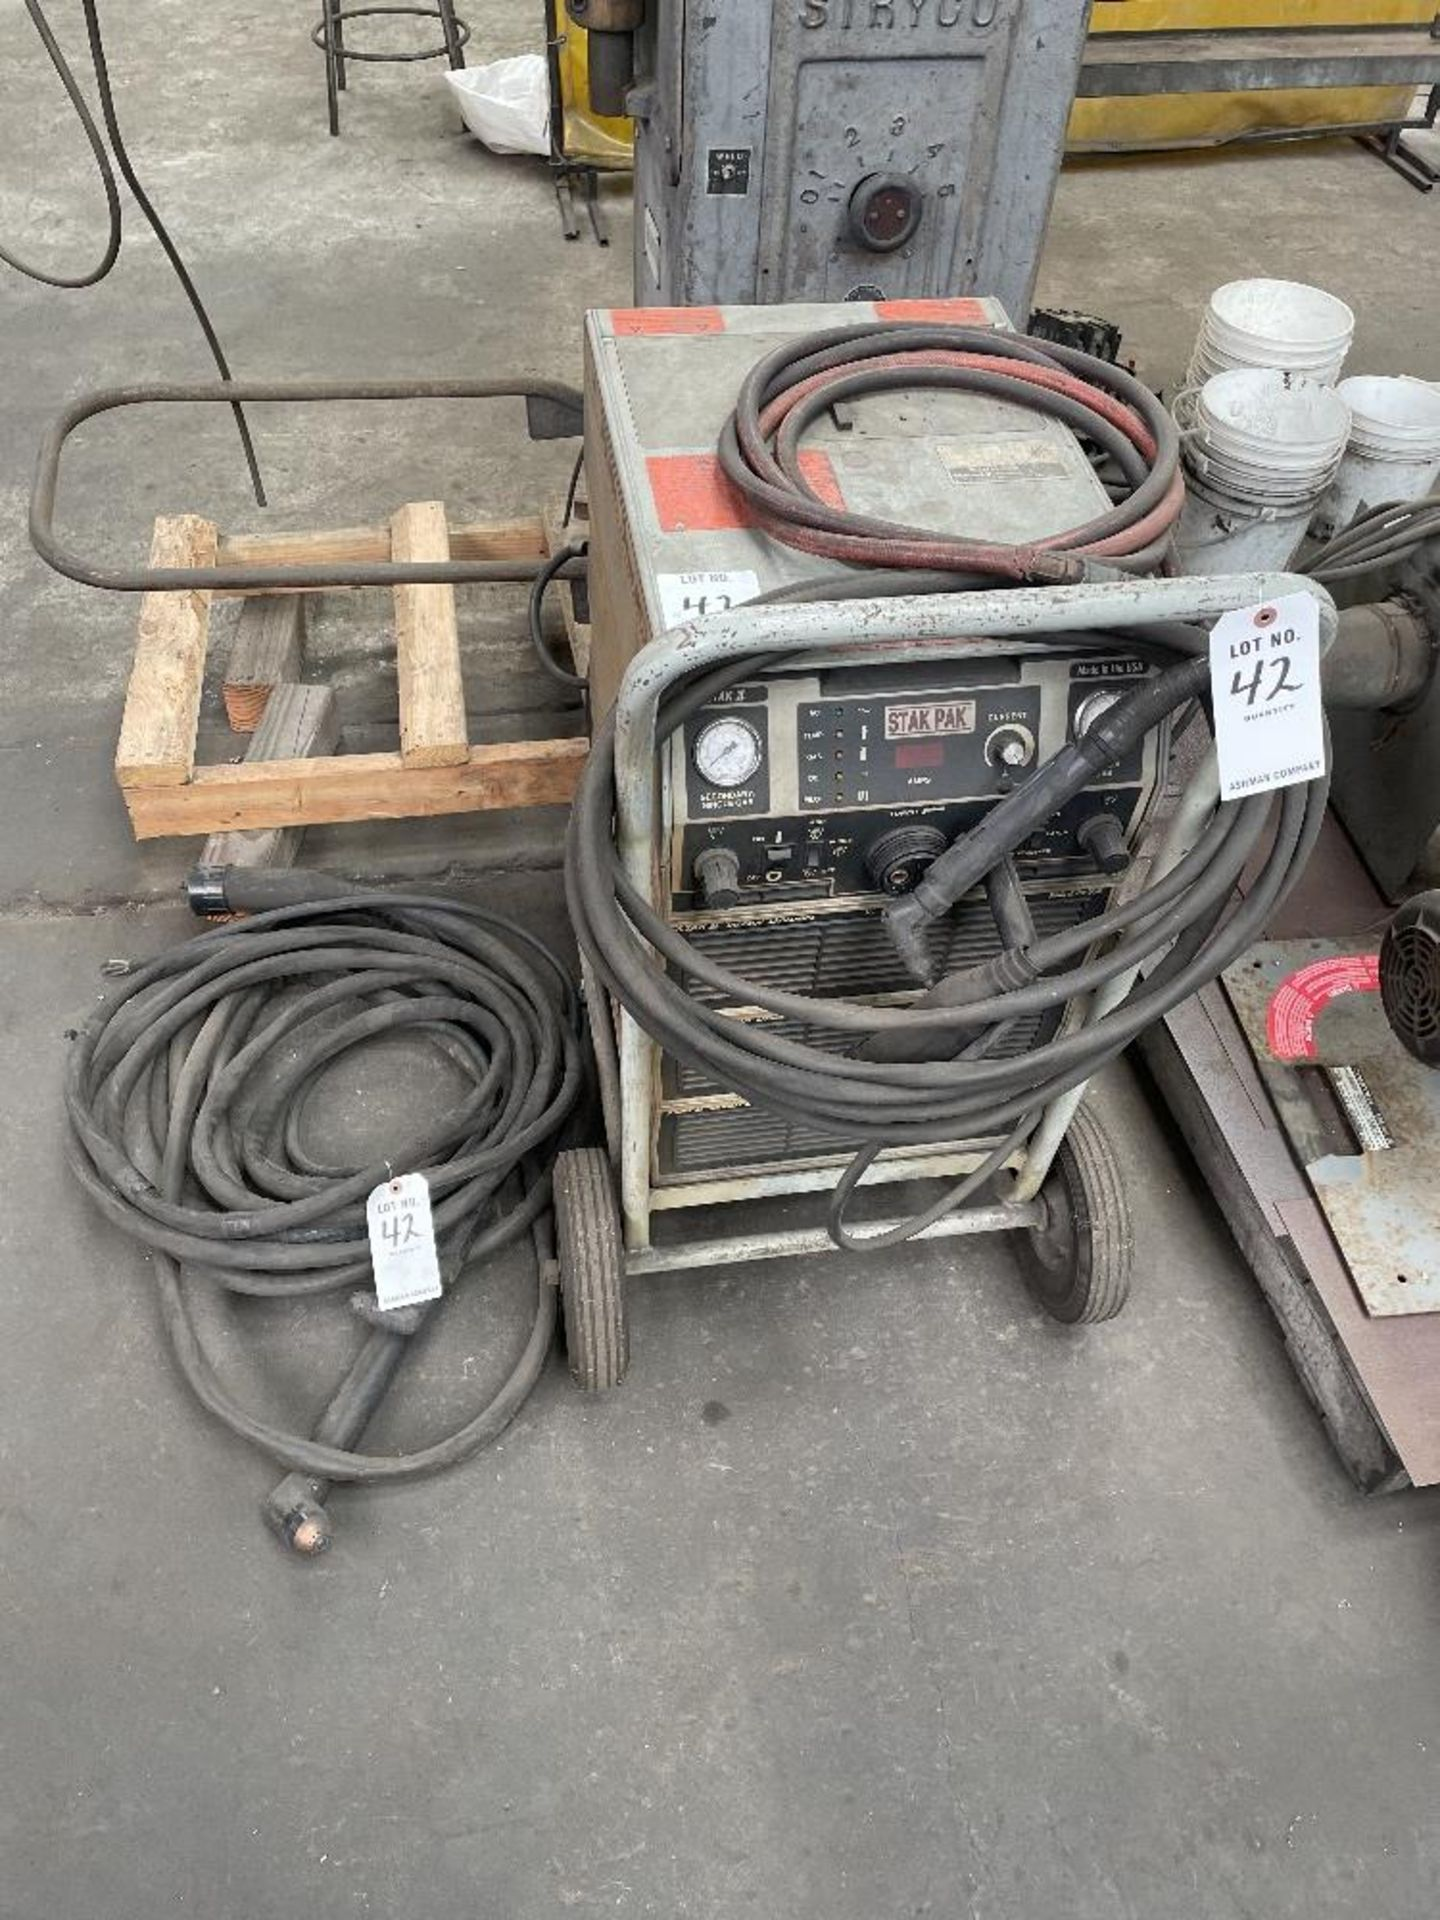 (1) THERMAL DYNAMICS PM6402 STAK PAK PLASMA CUTTER WITH 3 CUTTING HEADS, S/N- M60844A1851103